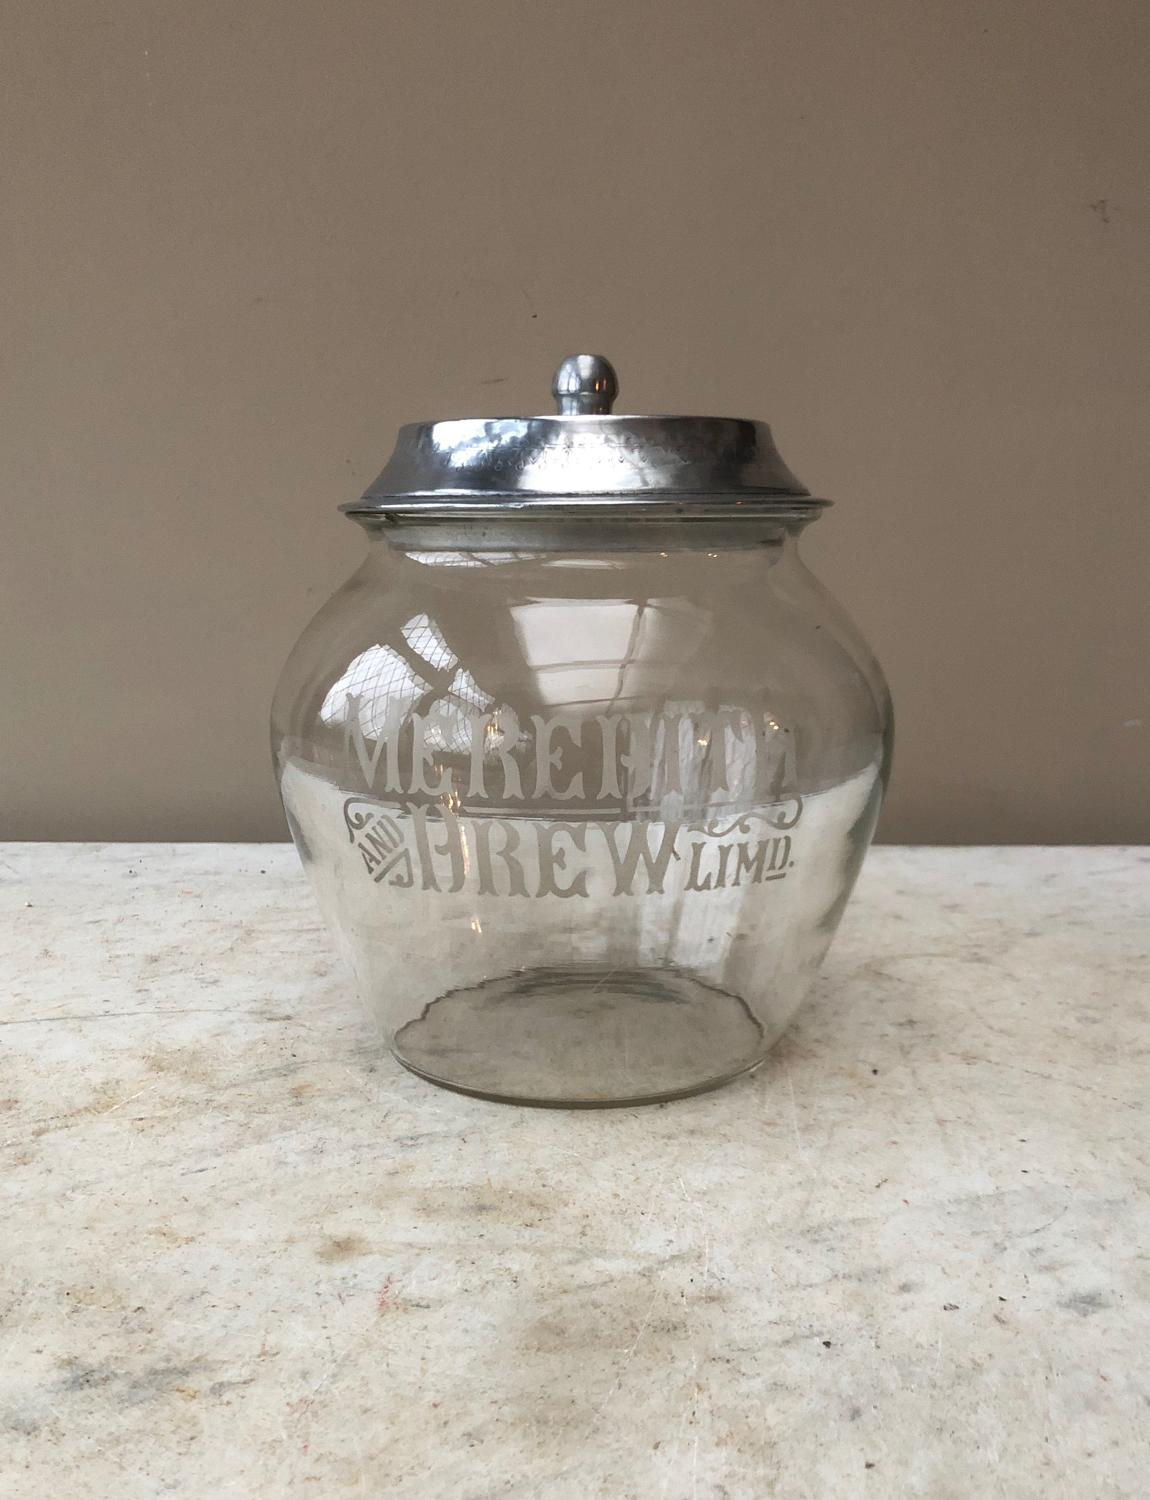 The Rarer Shape Shops Glass Advertising Jar - Meredith & Drew